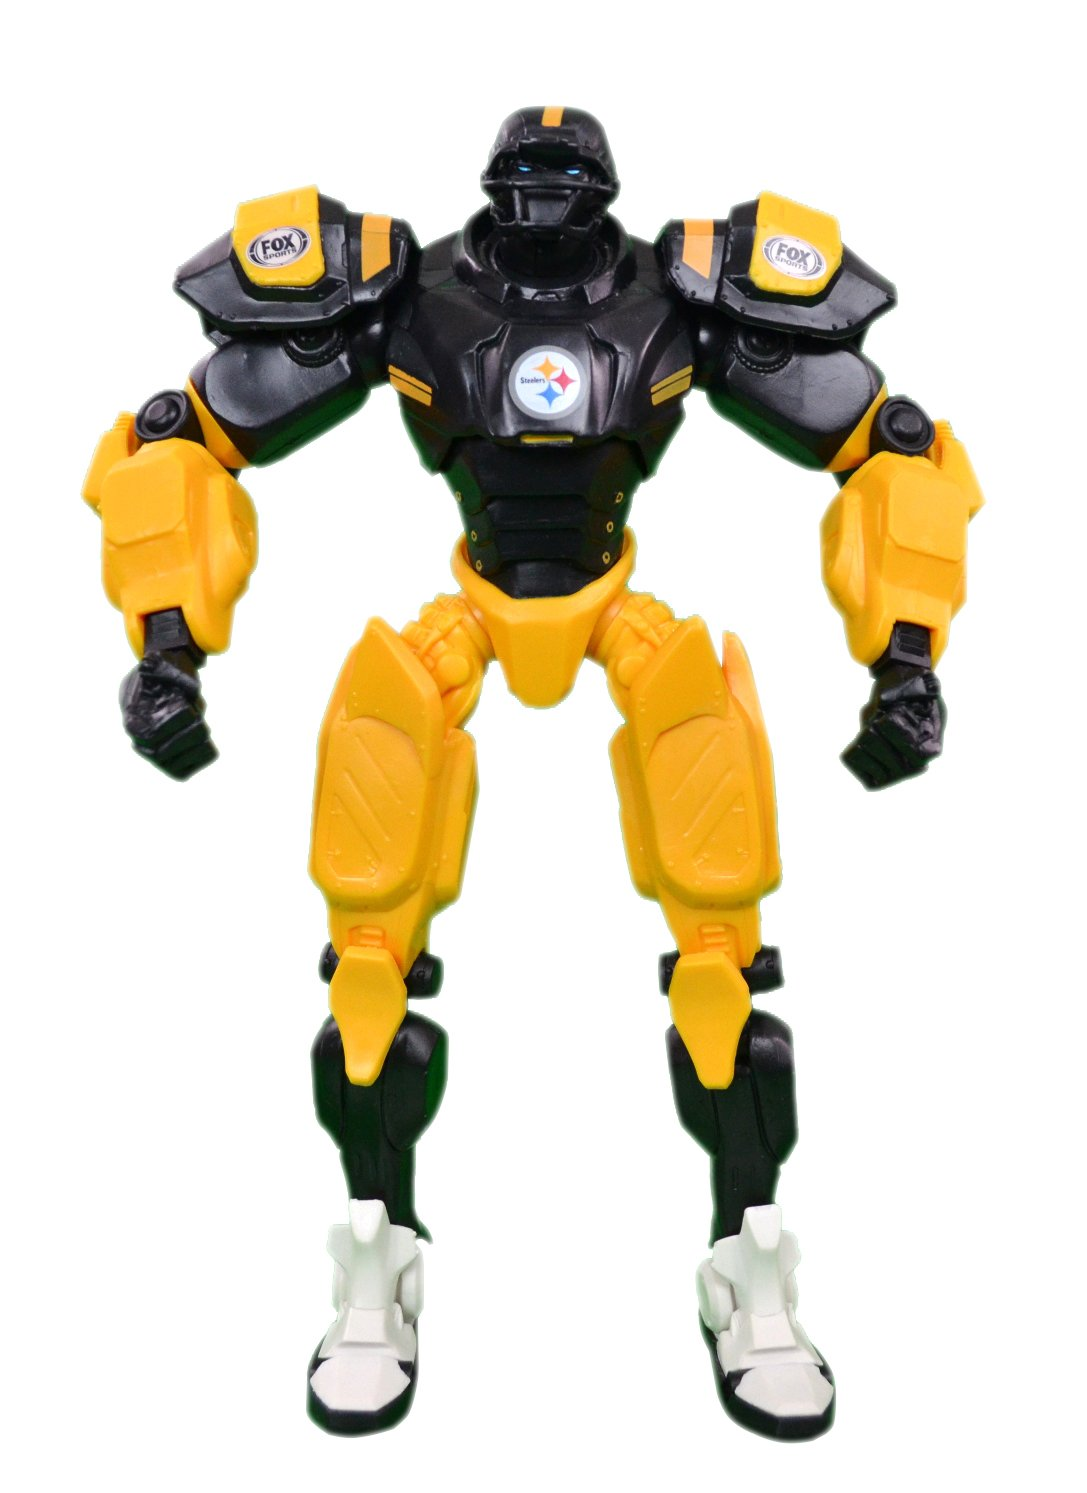 buy popular 33d7c 75a2f Official National Football Fan Shop Authentic NFL Fox Sports Cleatus Robot  (Pittsburgh Steelers)